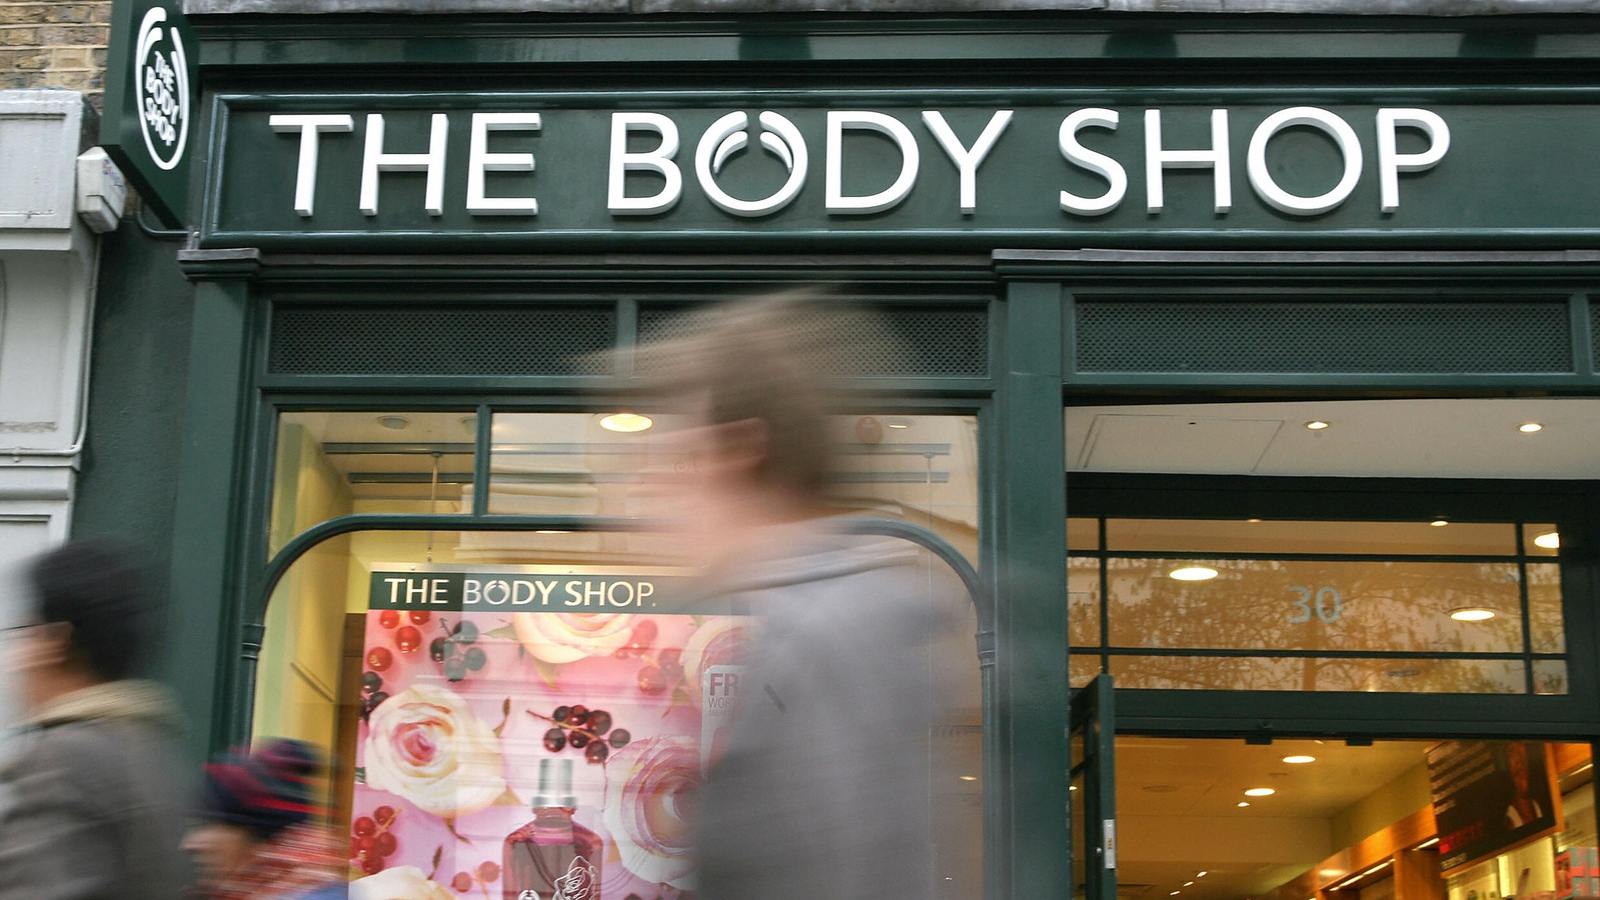 L'Oreal considers Body Shop sale